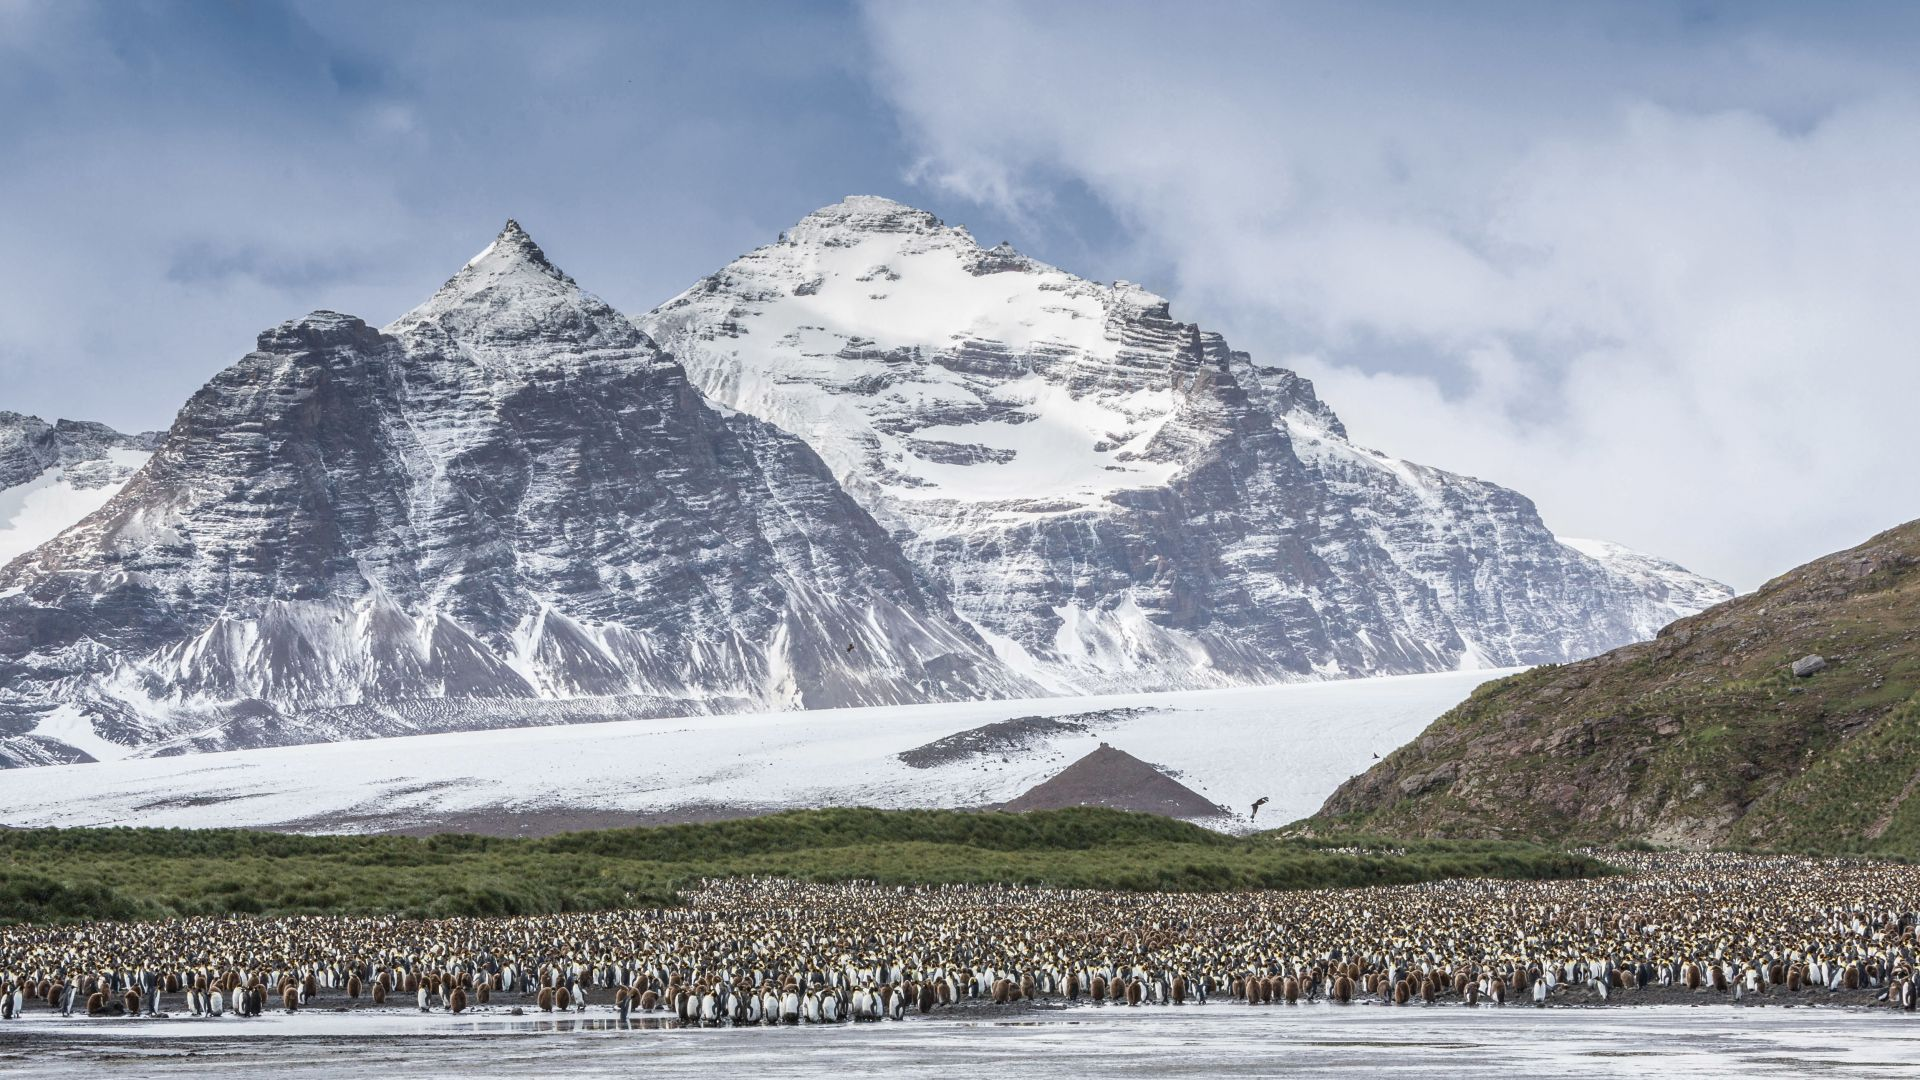 Antarctica, mountains, penguins, 5k (horizontal)